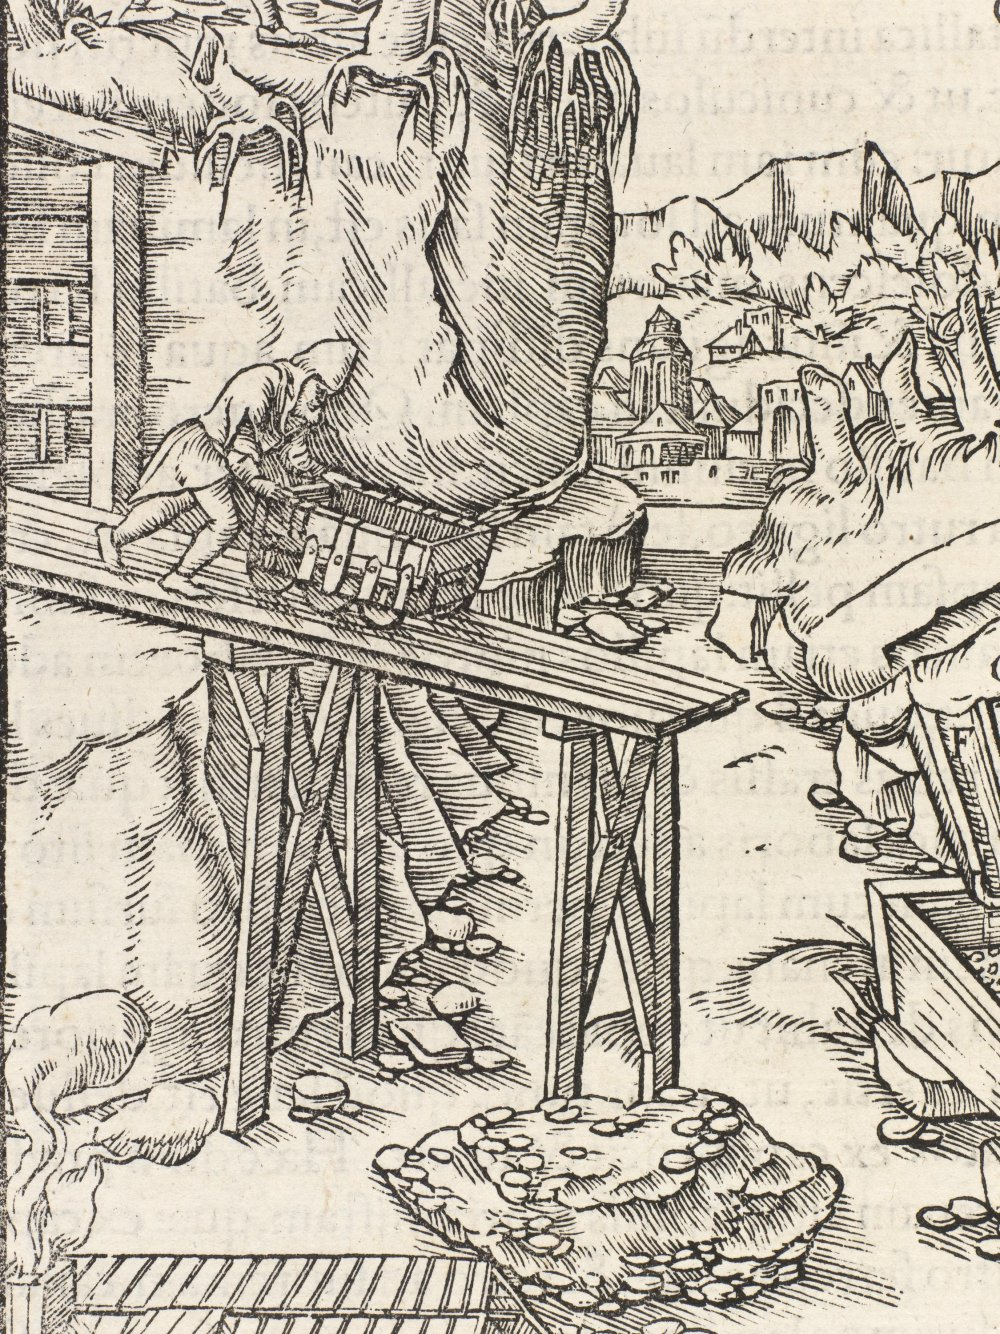 Detail of a plate from Agricola's De Re Metallica, showing a 16th century mine wagonway